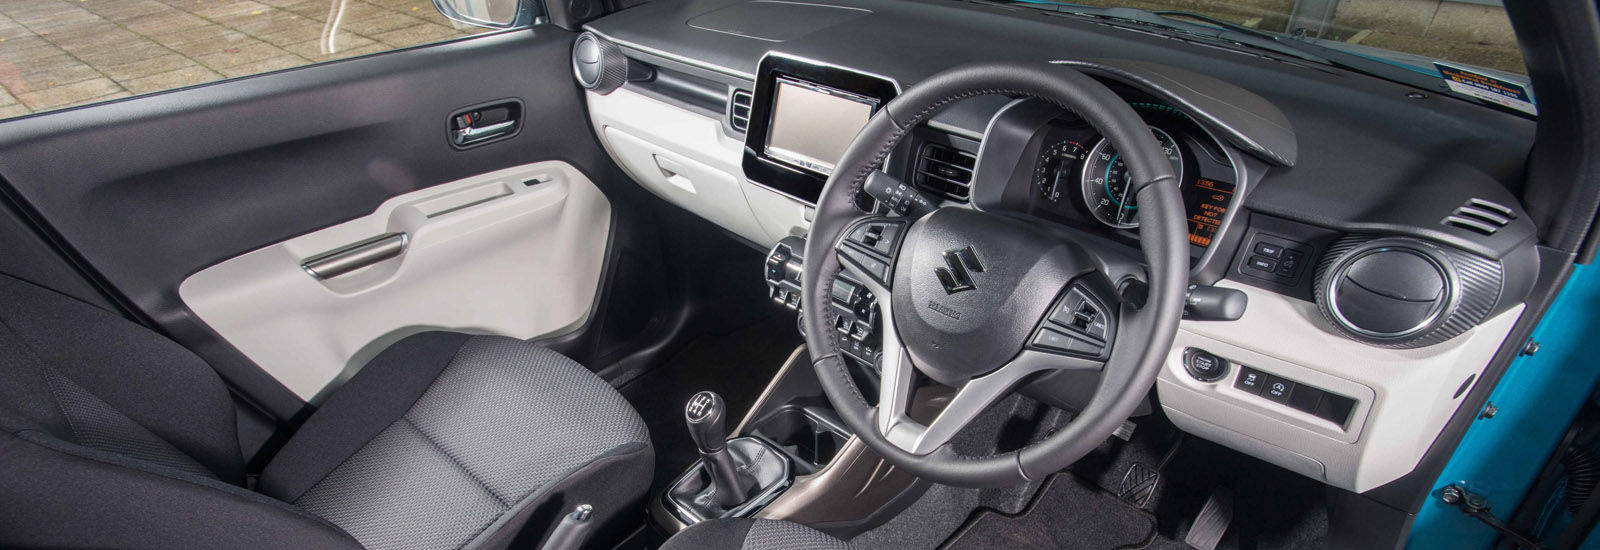 2018 suzuki ignis. Simple Suzuki The Sportu0027s Interior Could Add Red Trim Around The Dashboard Vents And  Stitching On Seats Of Standard Caru0027s Interior Shown Here Throughout 2018 Suzuki Ignis